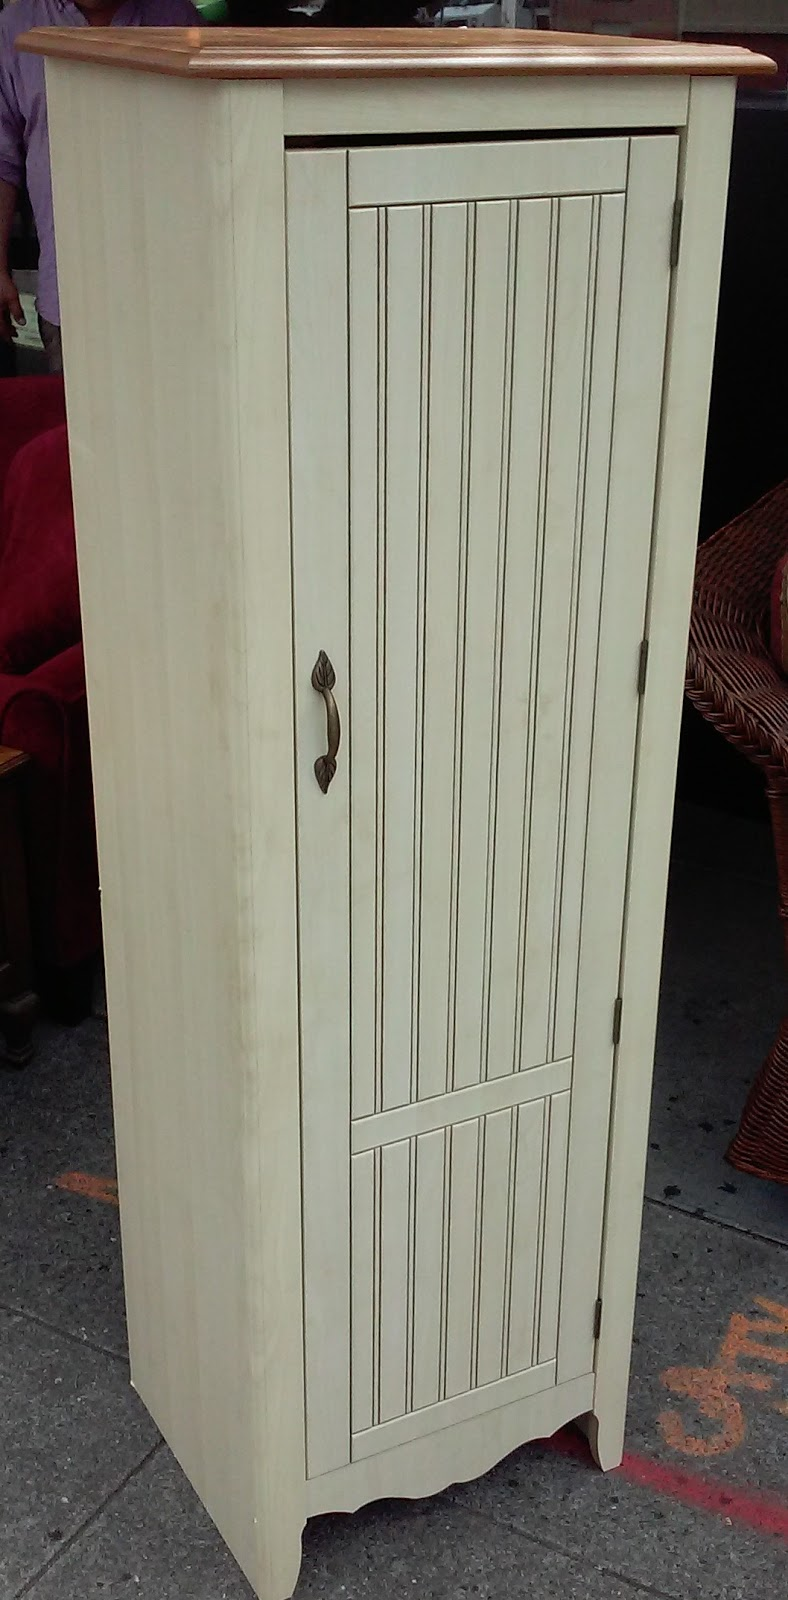 Uhuru Furniture Collectibles Sold O 39 Sullivan 5 39 Tall Pantry Cabinet 60